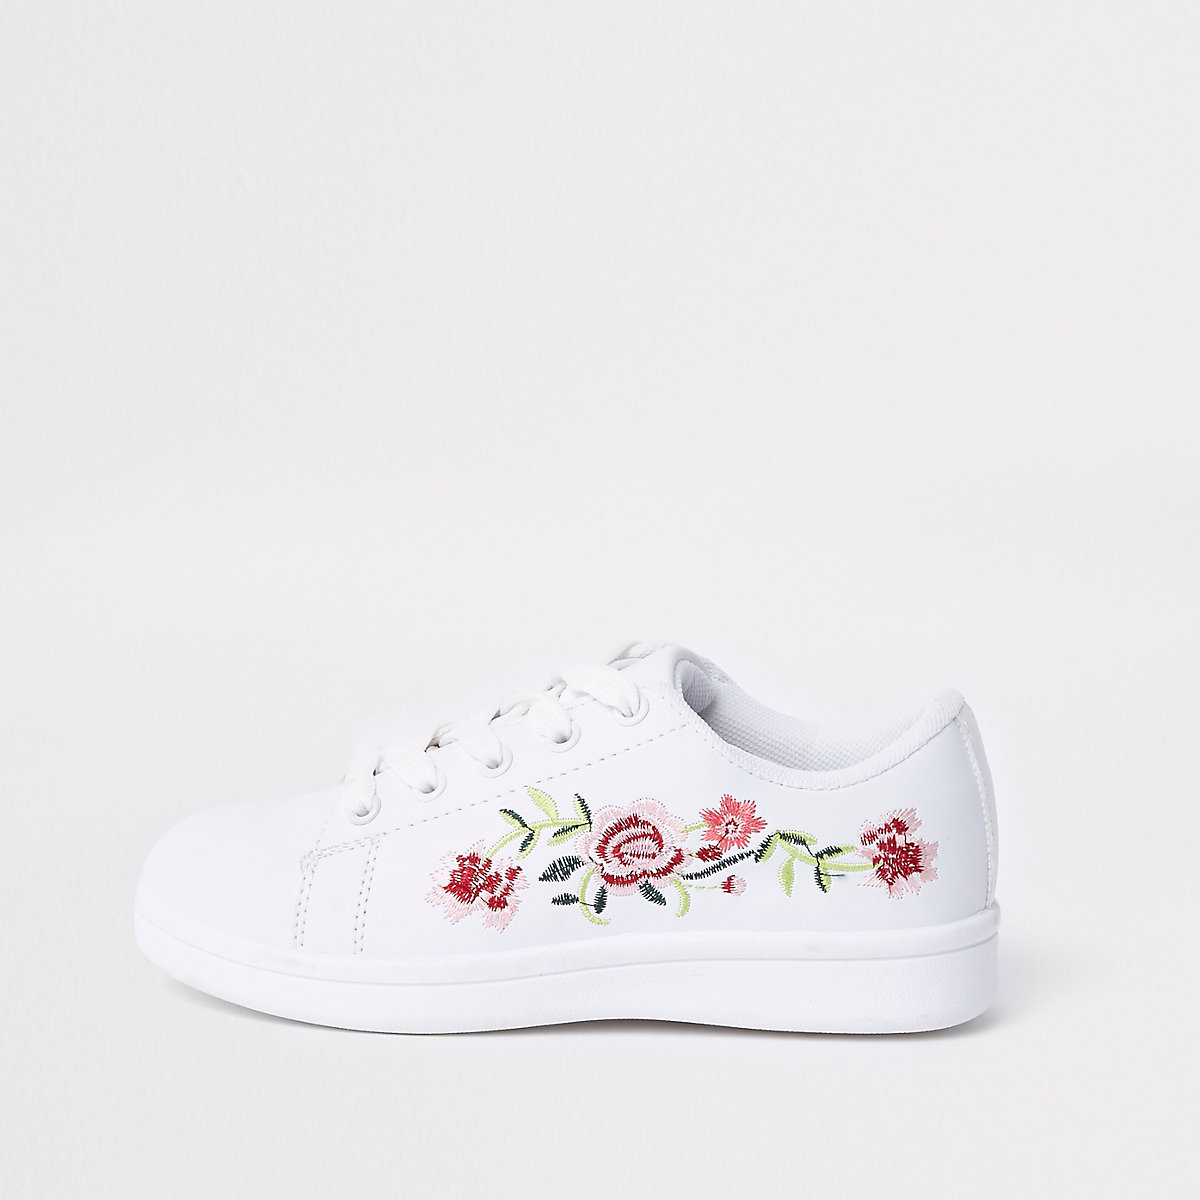 Girls white floral embroidered plimsolls